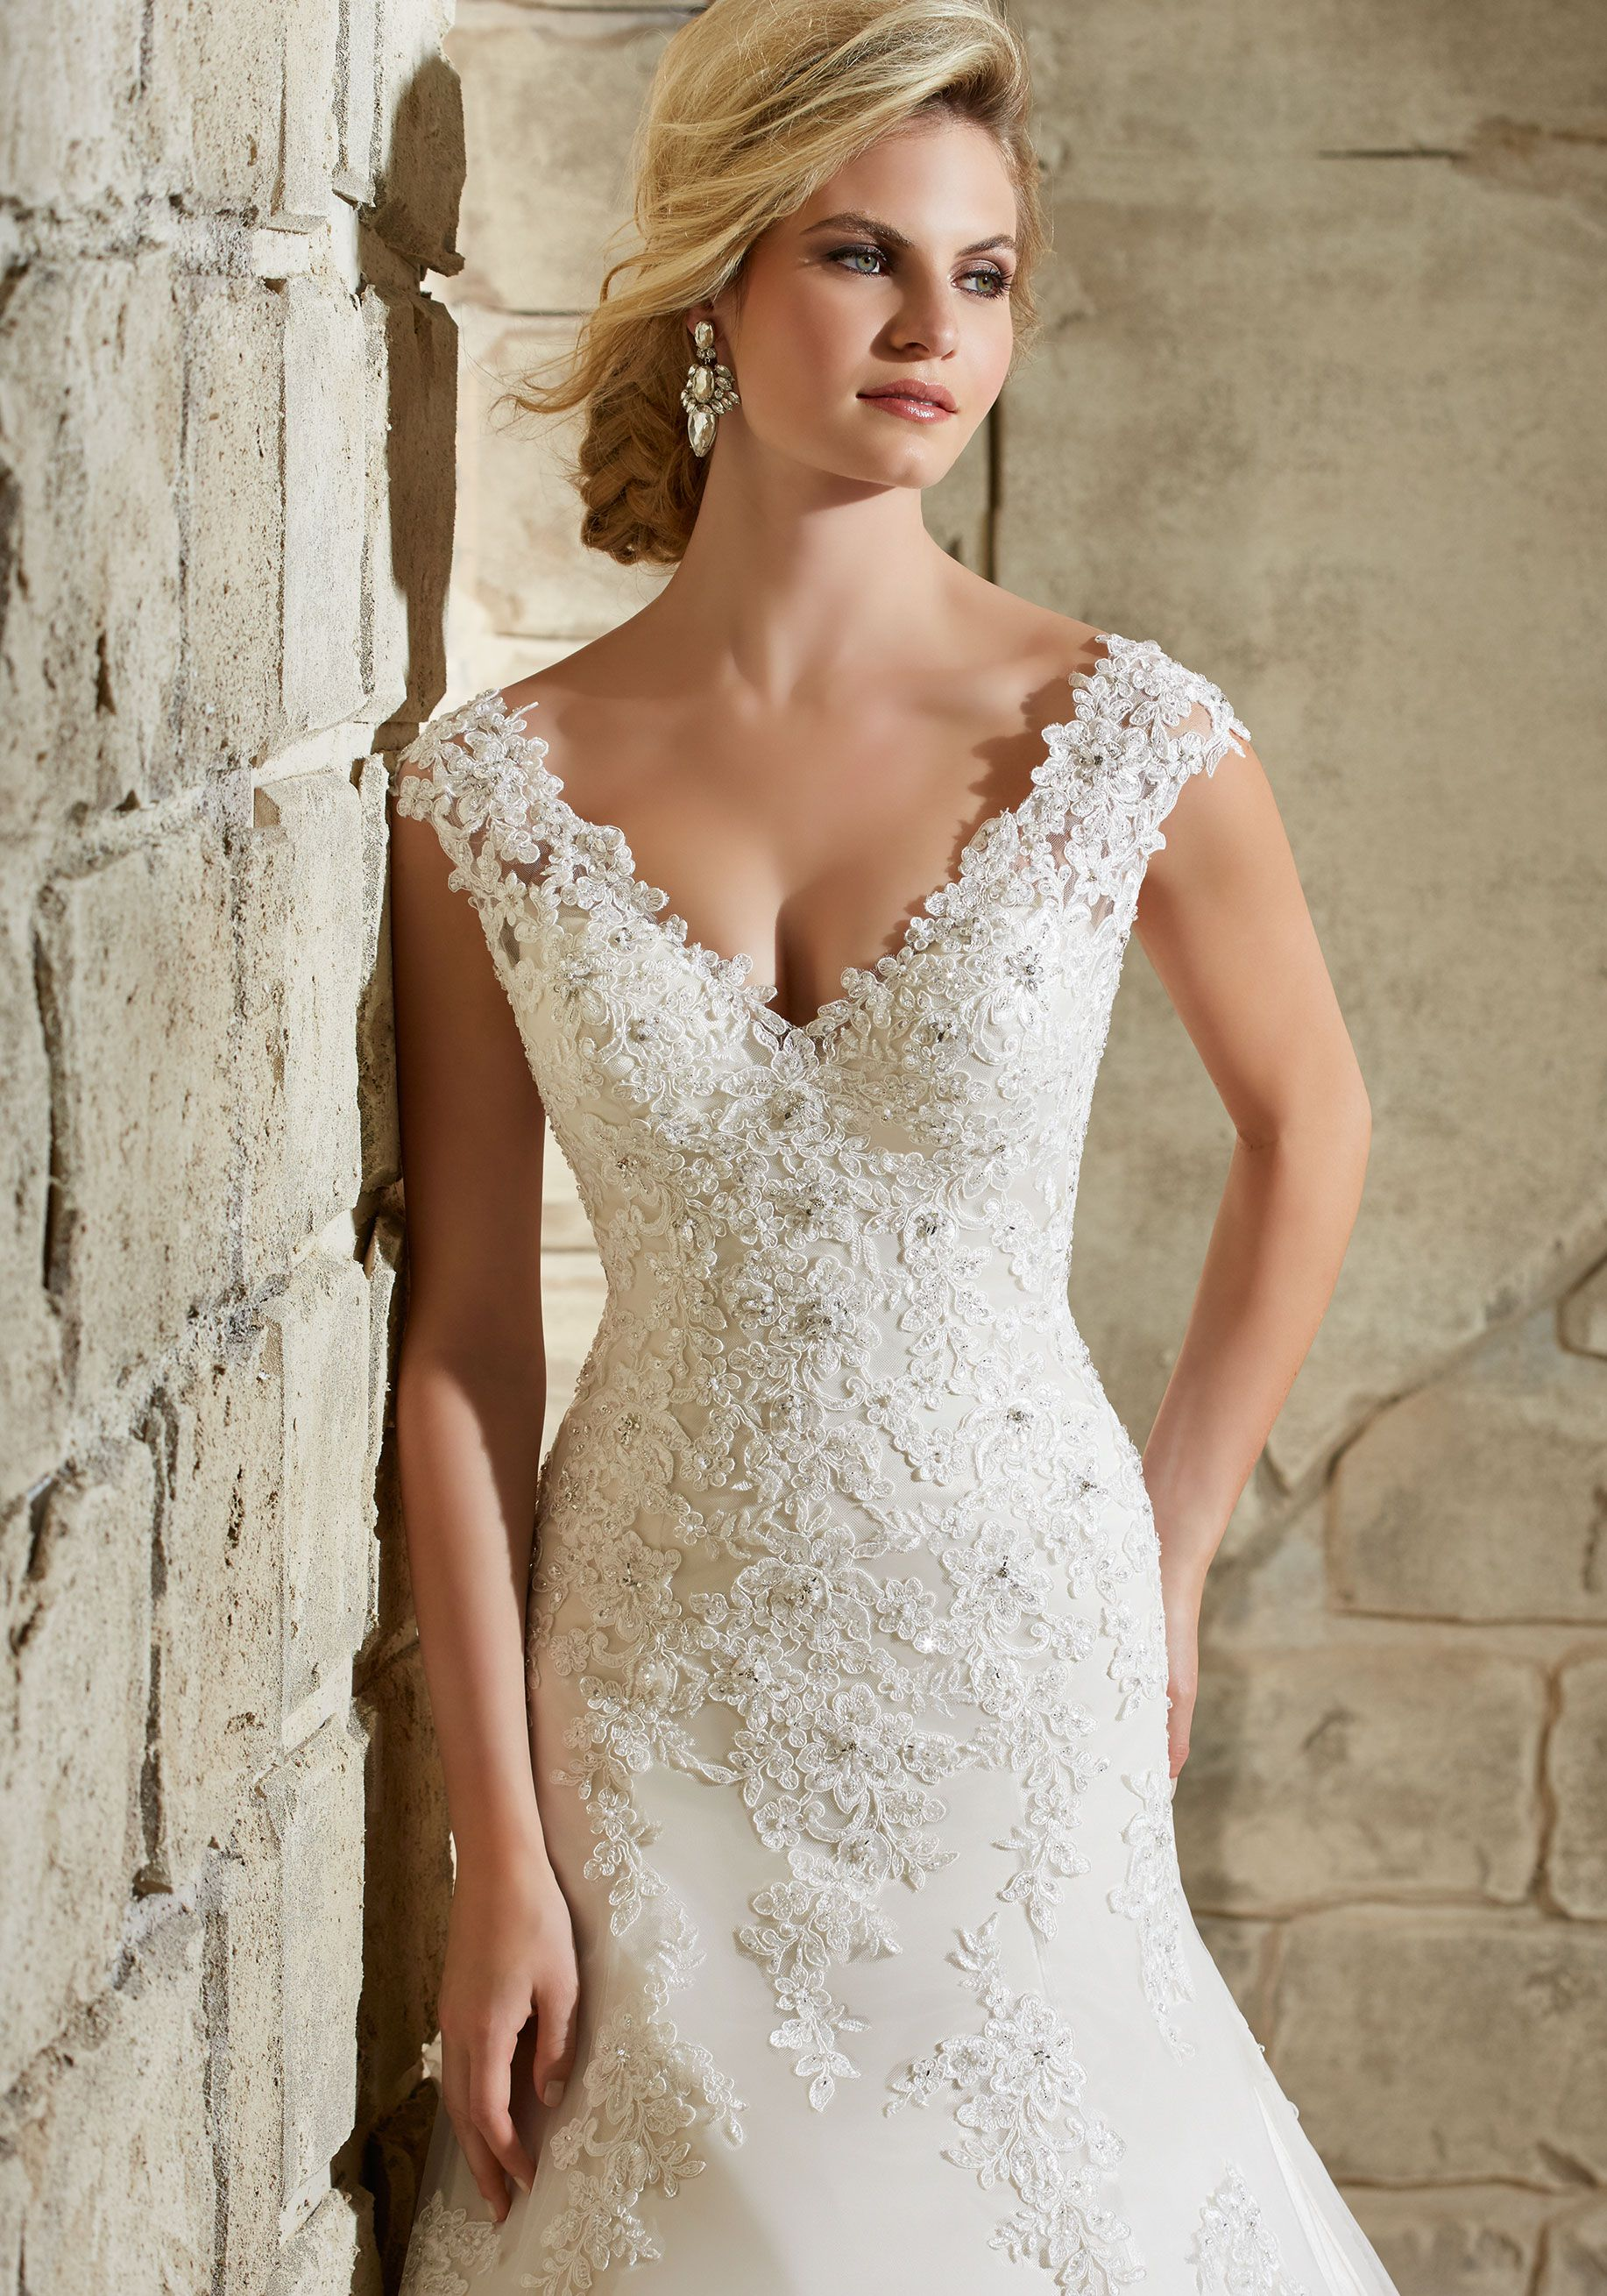 Alençon lace appliqués on net with crystal beading and scalloped